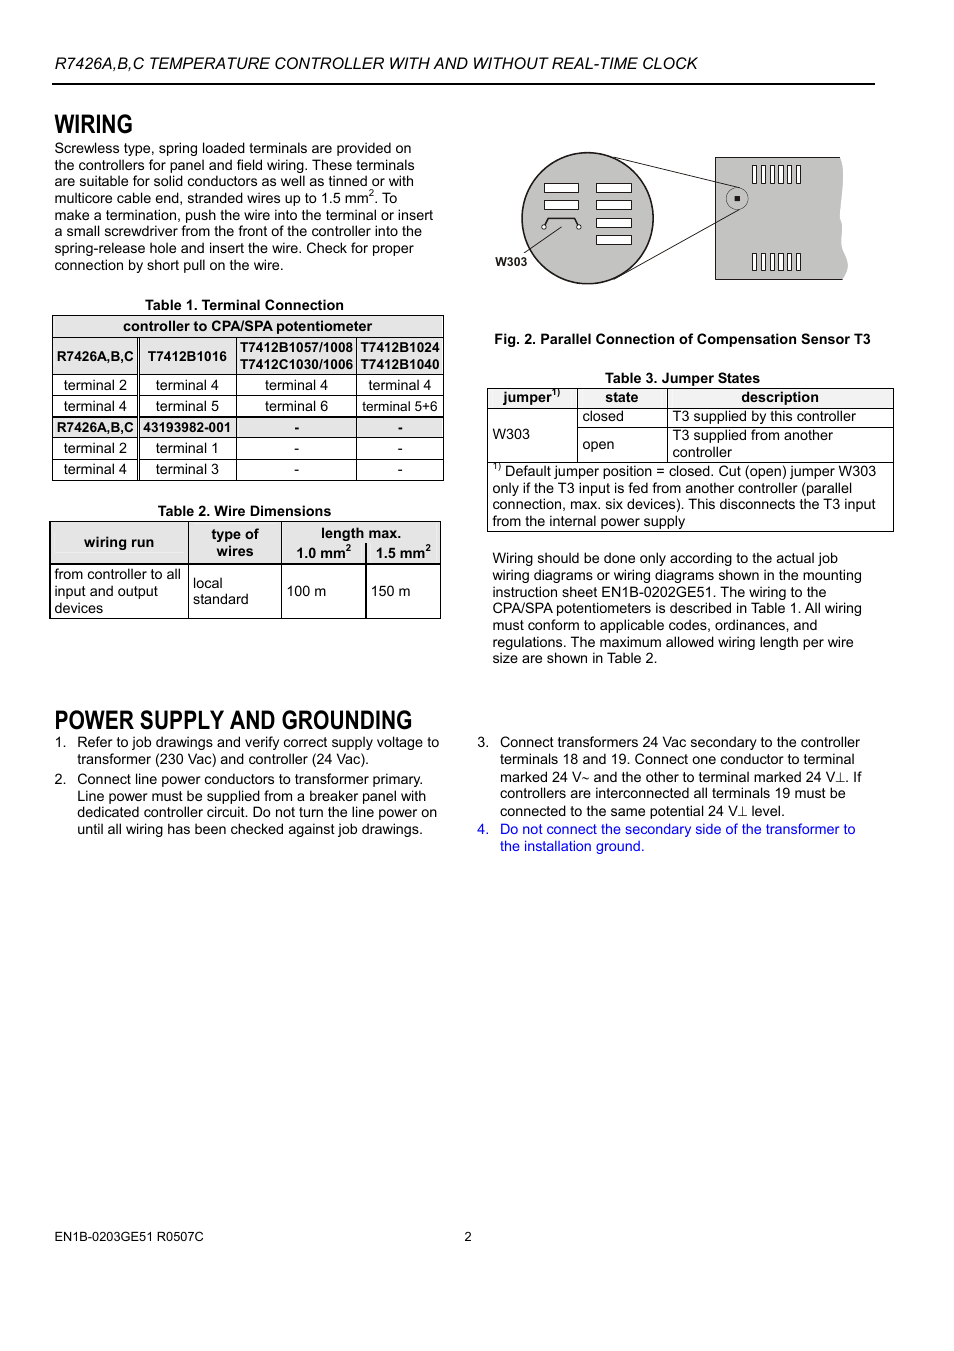 Wiring Power Supply And Grounding Honeywell Micronik 200 R7426a Potentiometer Diagram User Manual Page 2 20